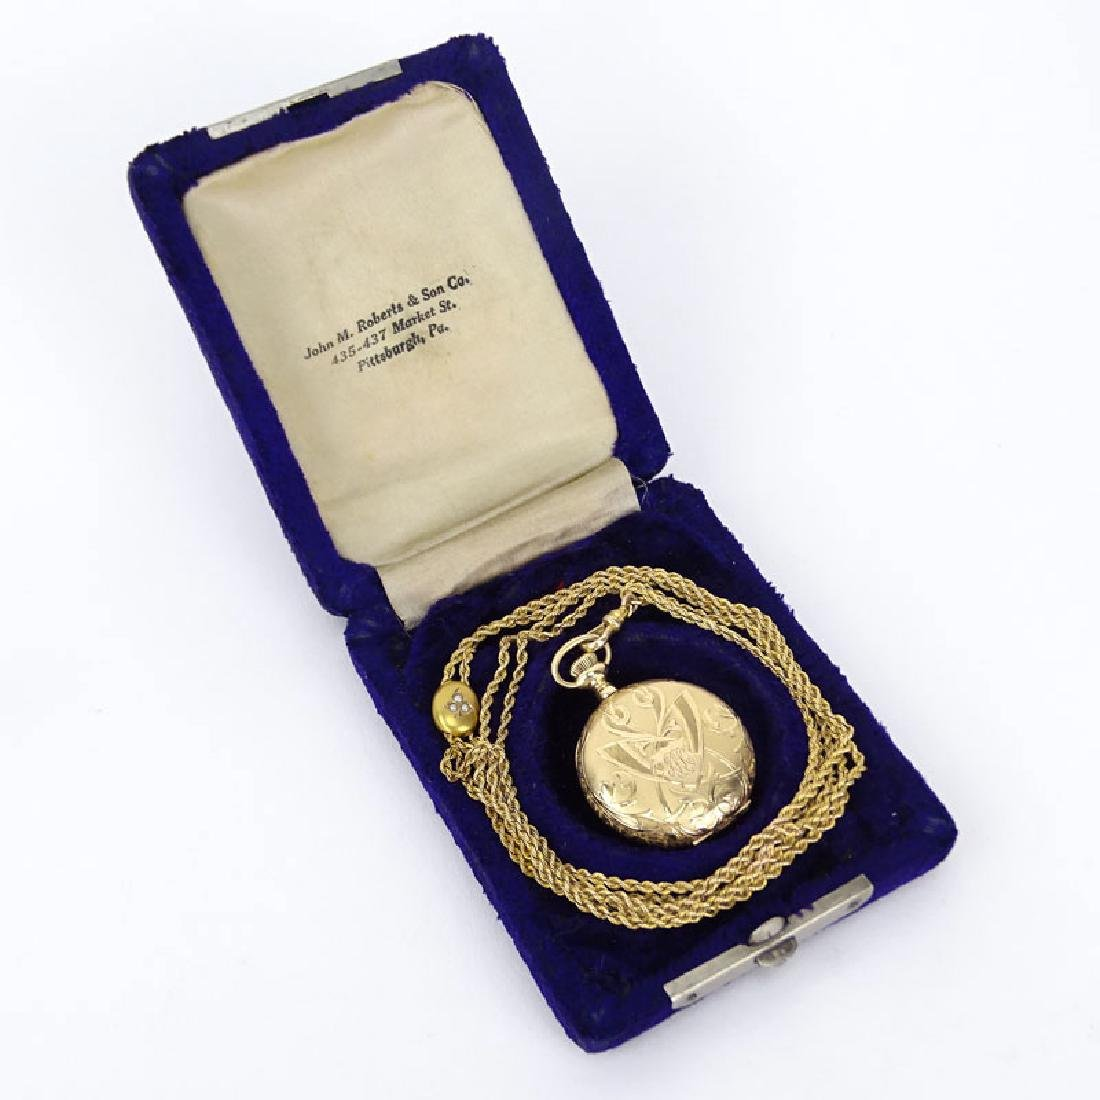 1903 14 Karat Gold Elgin Pocket Watch Serial #10907480.